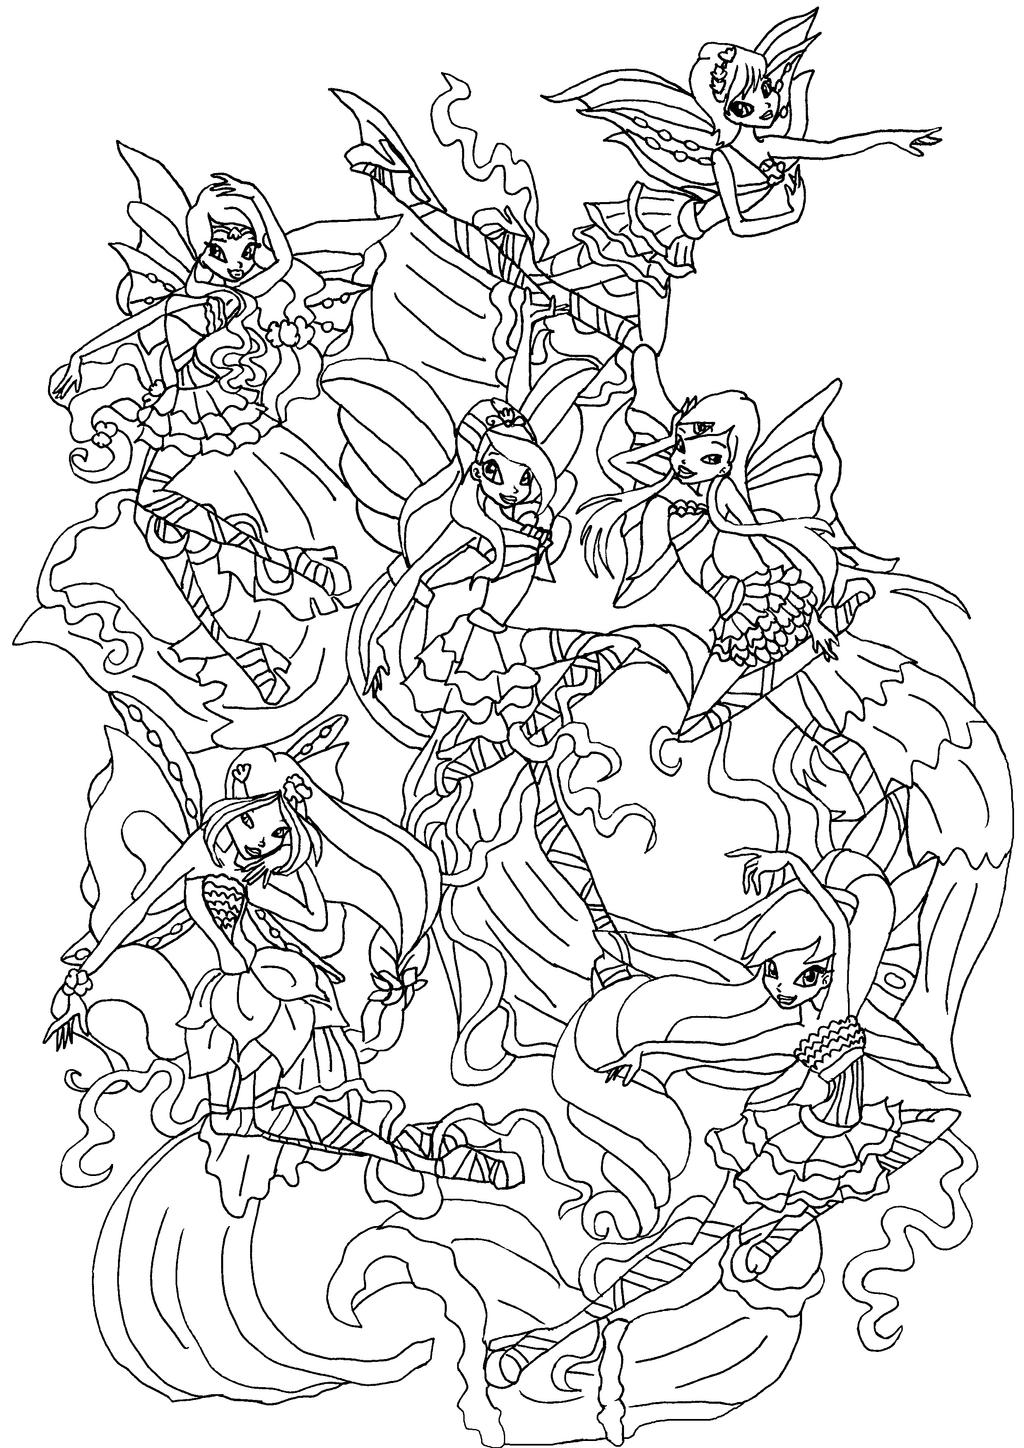 Winx club musa flyrix coloring pages coloriage - Winx Harmonix By Elfkena Winx Harmonix By Elfkena Coloriage Winx Harmonix Coloriage Layla Winx Cub Colouring Pages